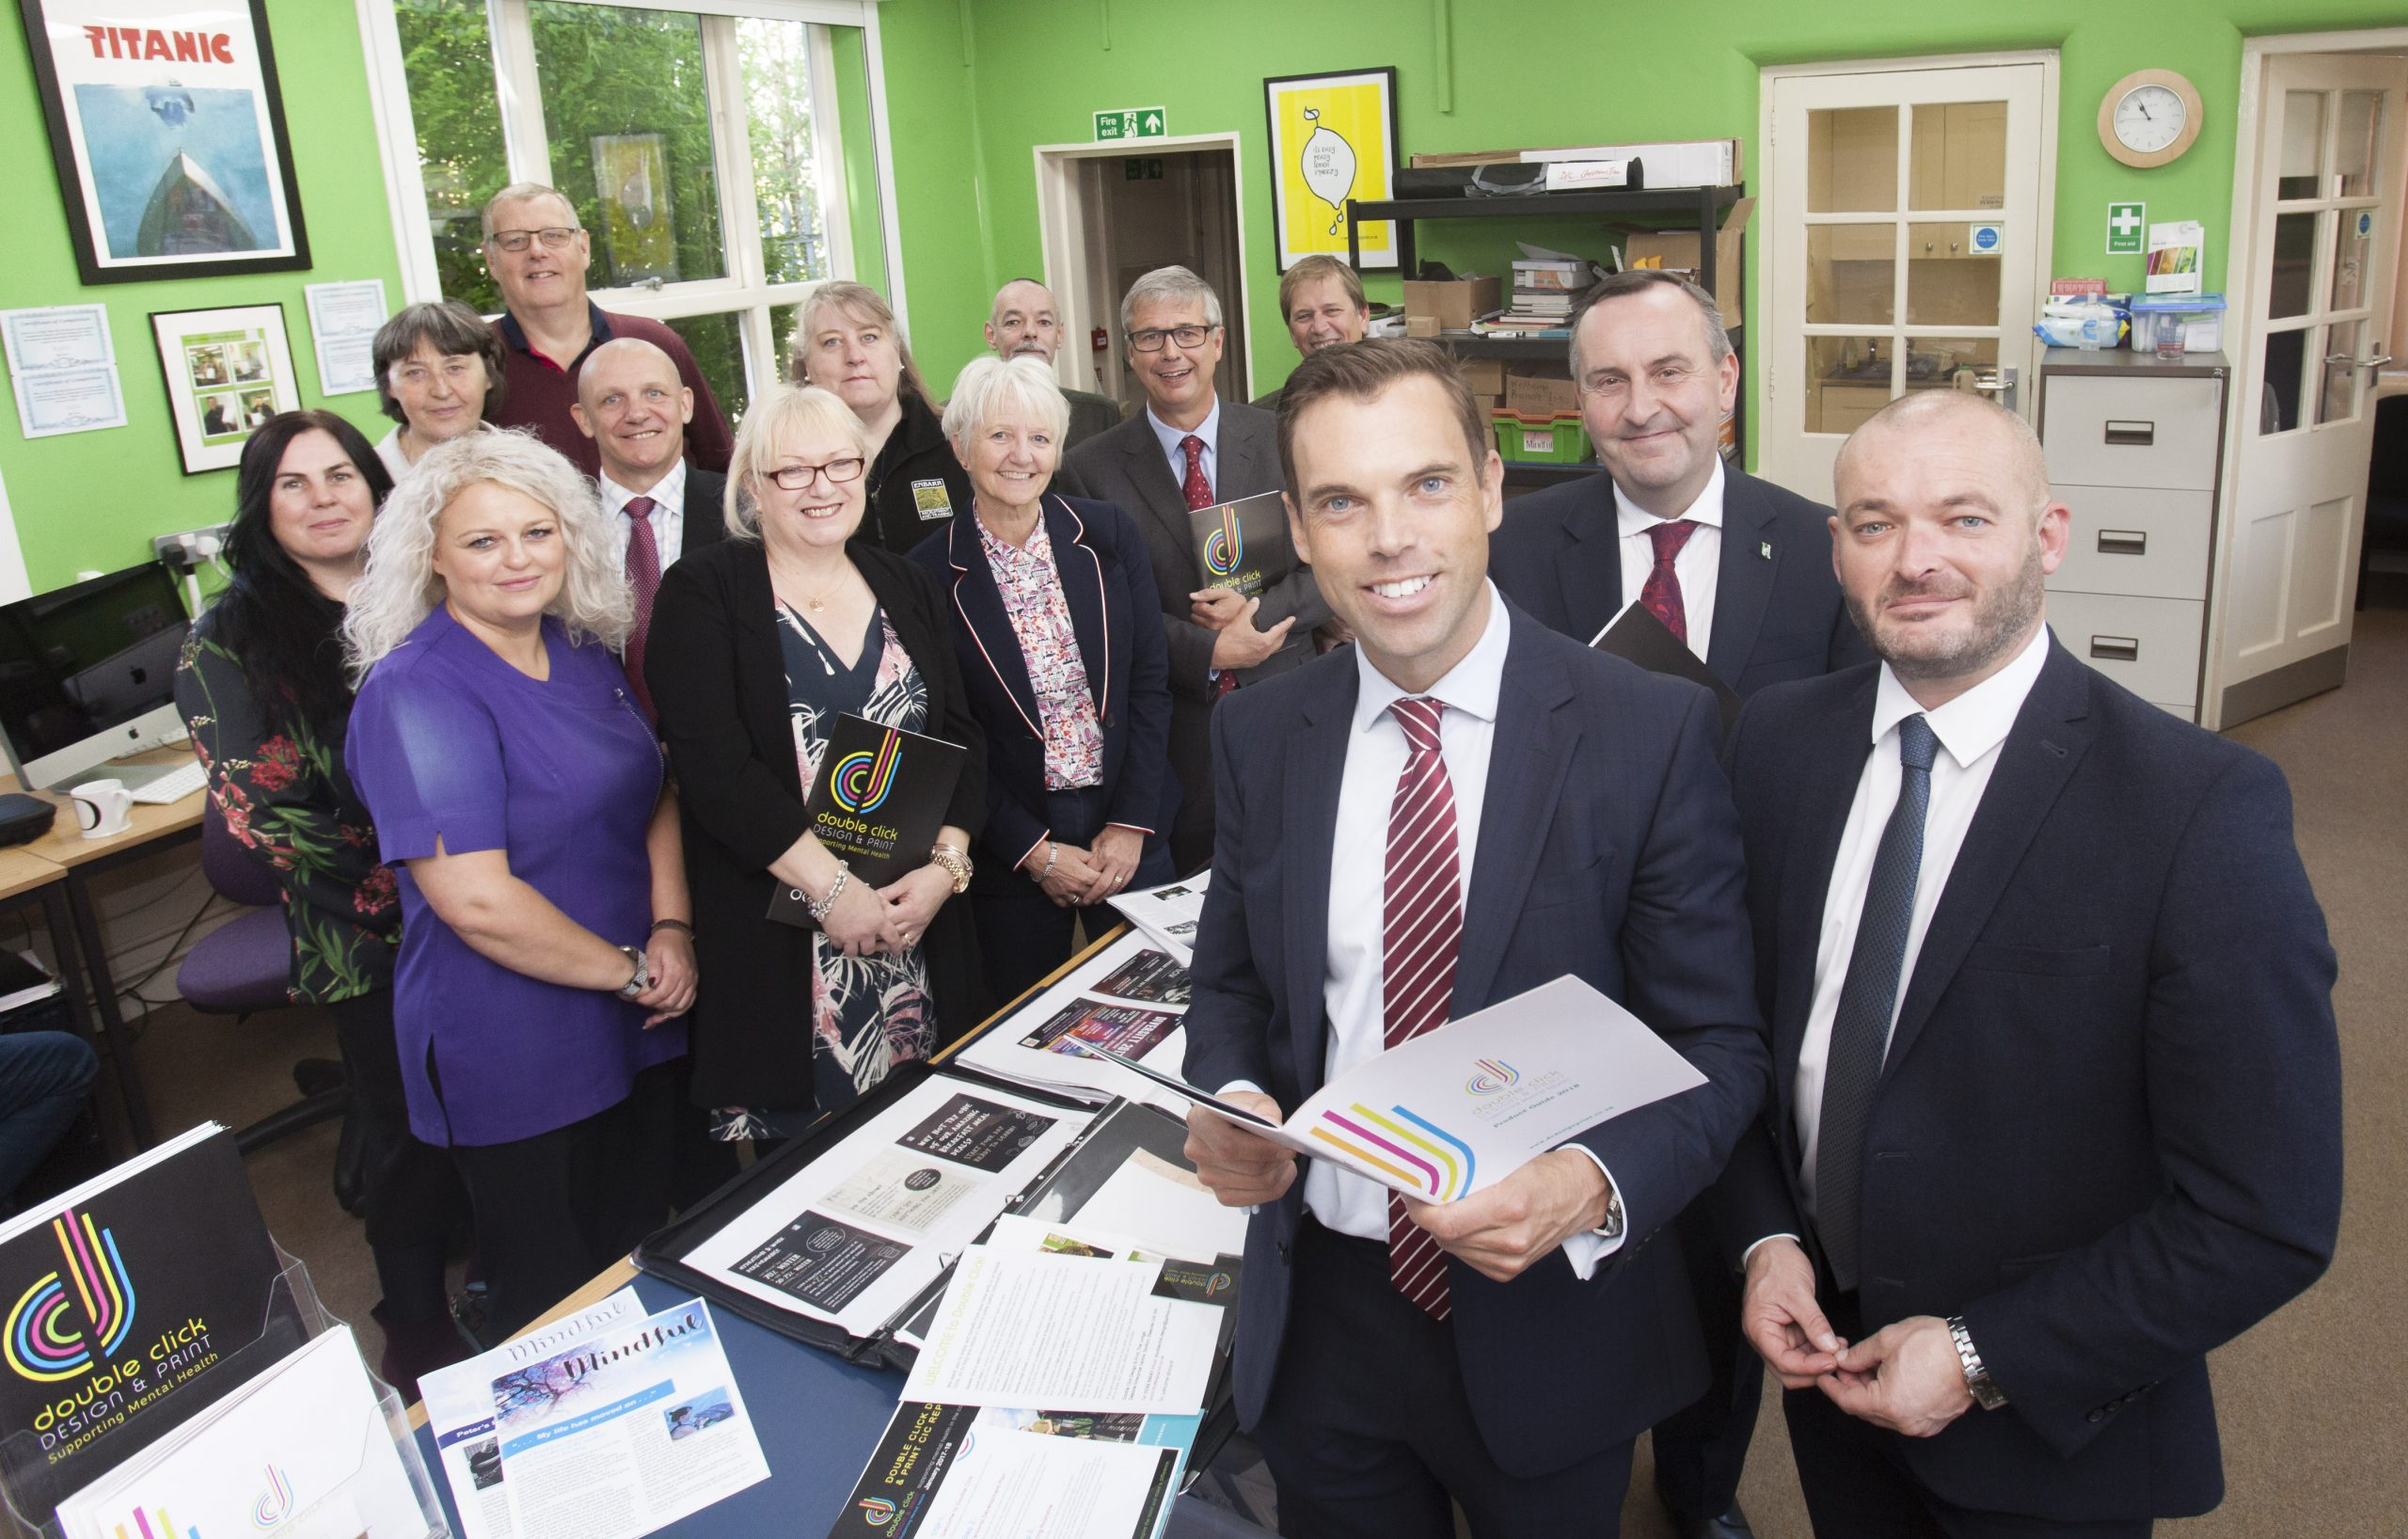 AM Ken Skates Cabinet Secretary for Economy and Transport visits double click Design and Print in Shotton,